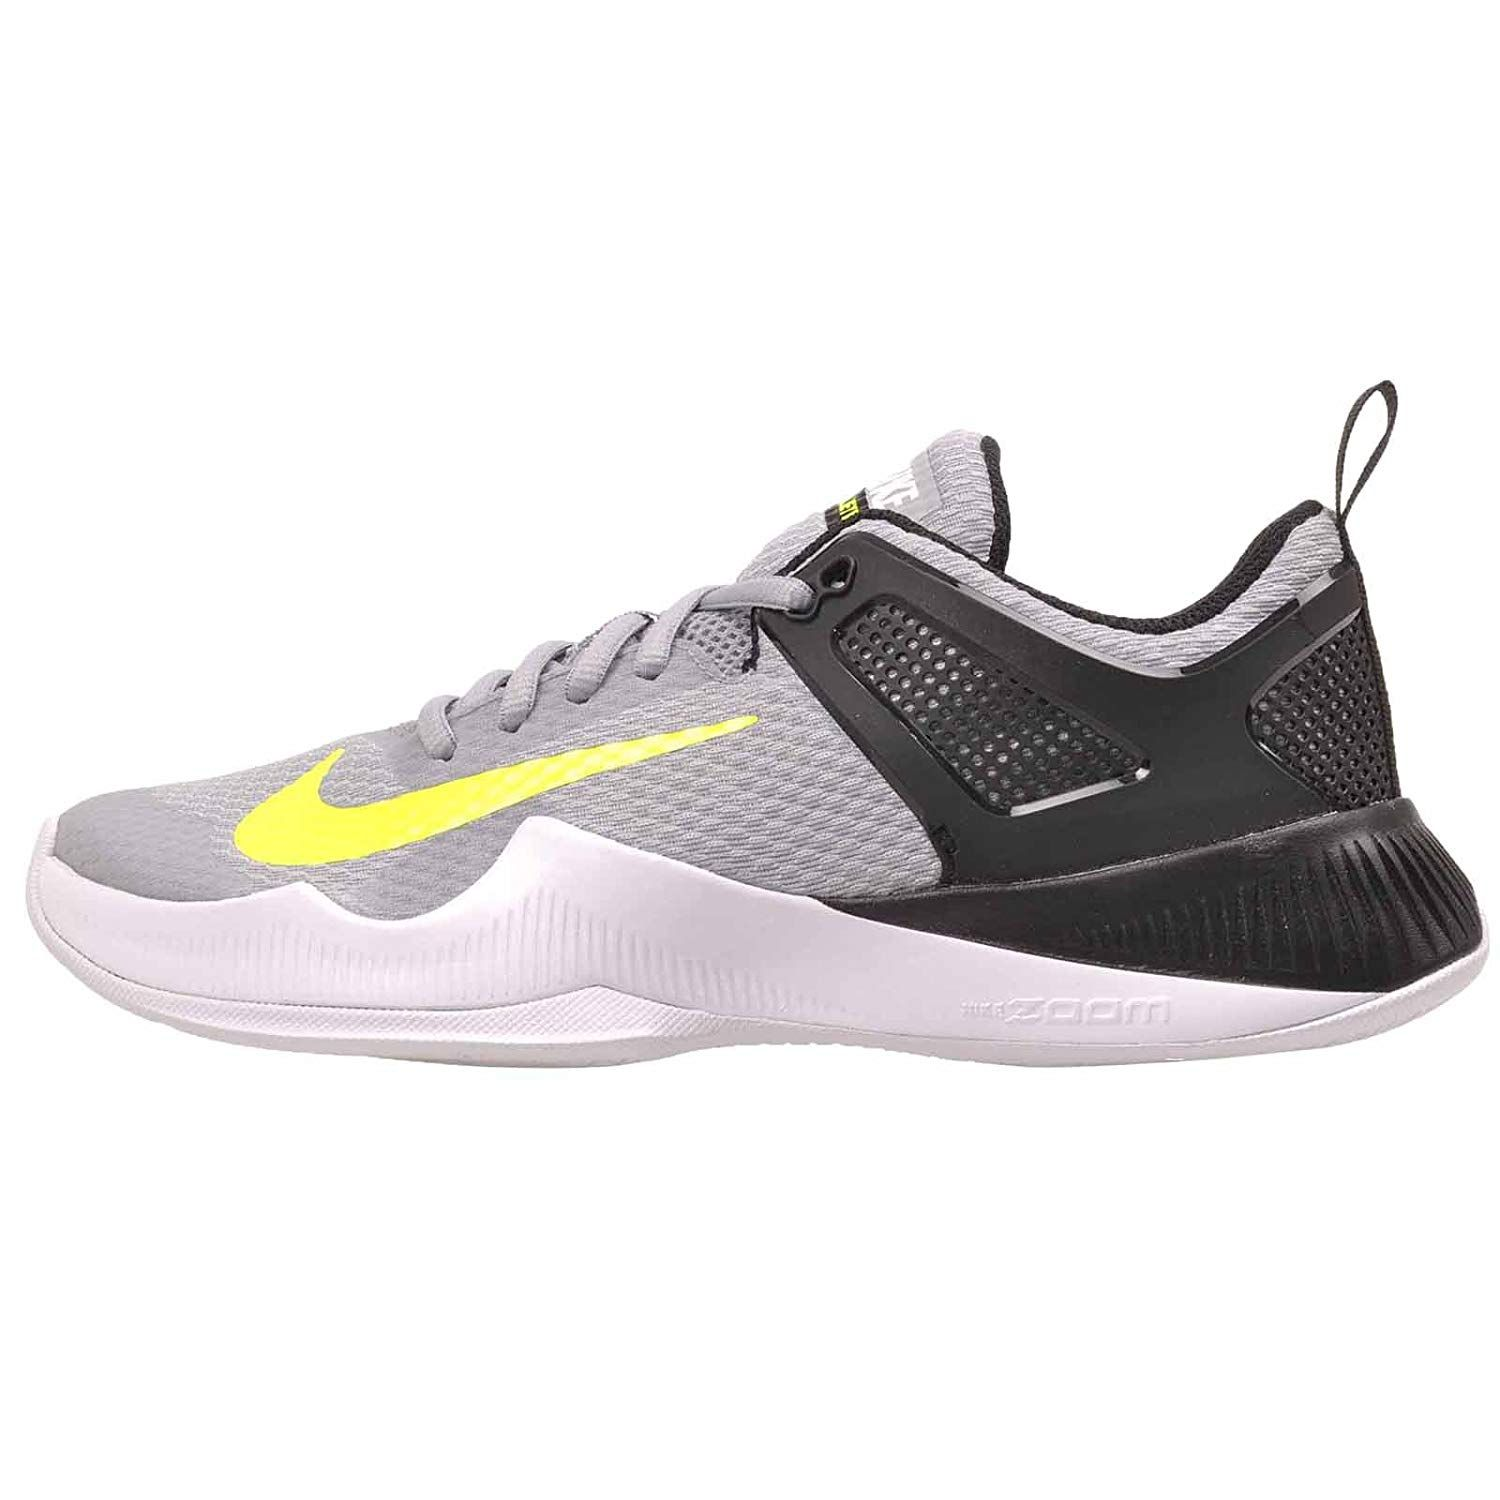 Nike Women S Air Zoom Hyperace Volleyball Shoes Do Hope That You Actually Do Love The Image This Is Our Affi Volleyball Shoes Water Shoes Women Nike Women